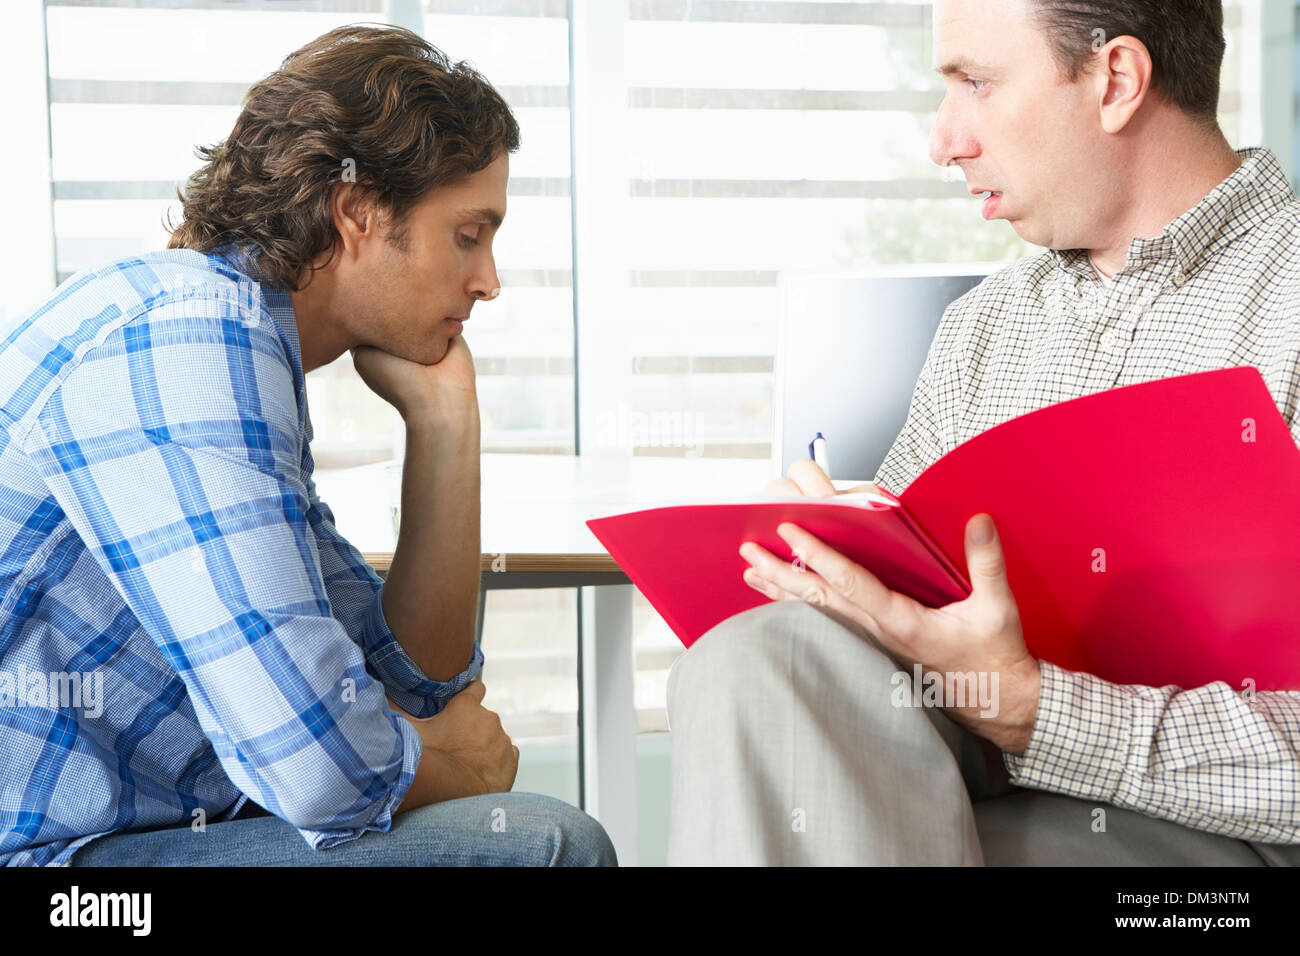 Man Having Counselling Session - Stock Image